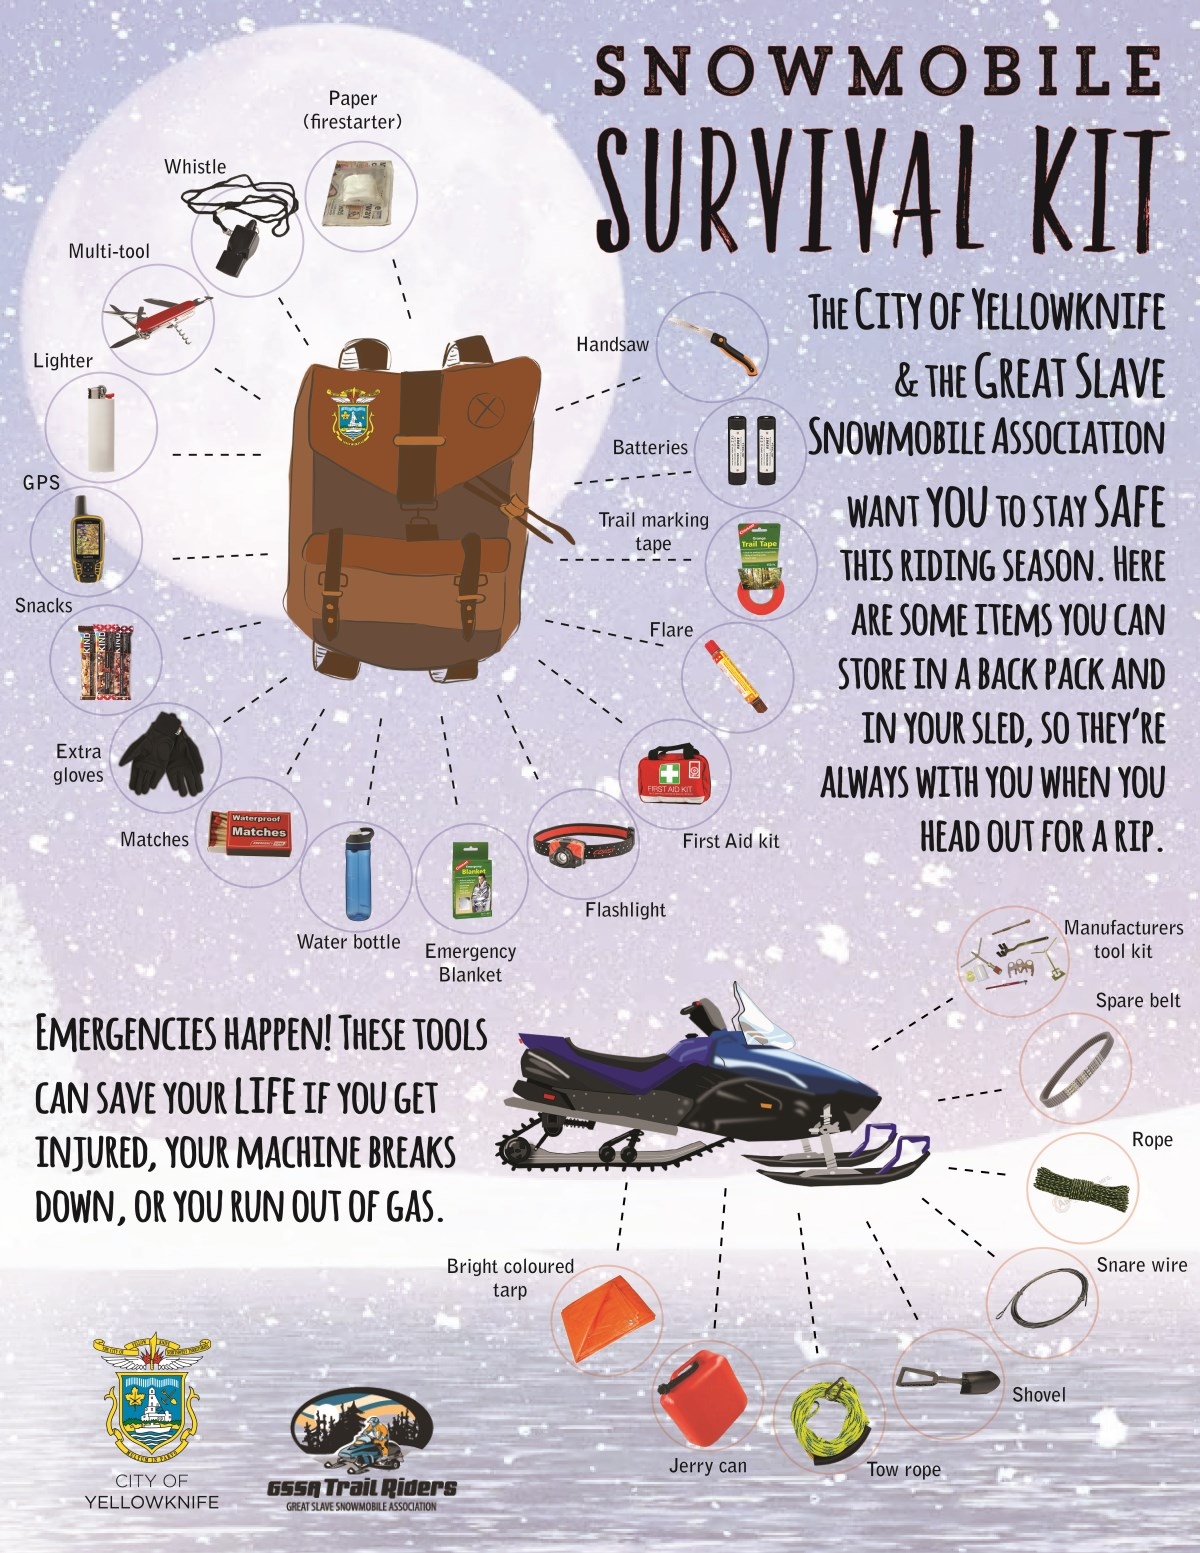 Snowmobile Survival Kit